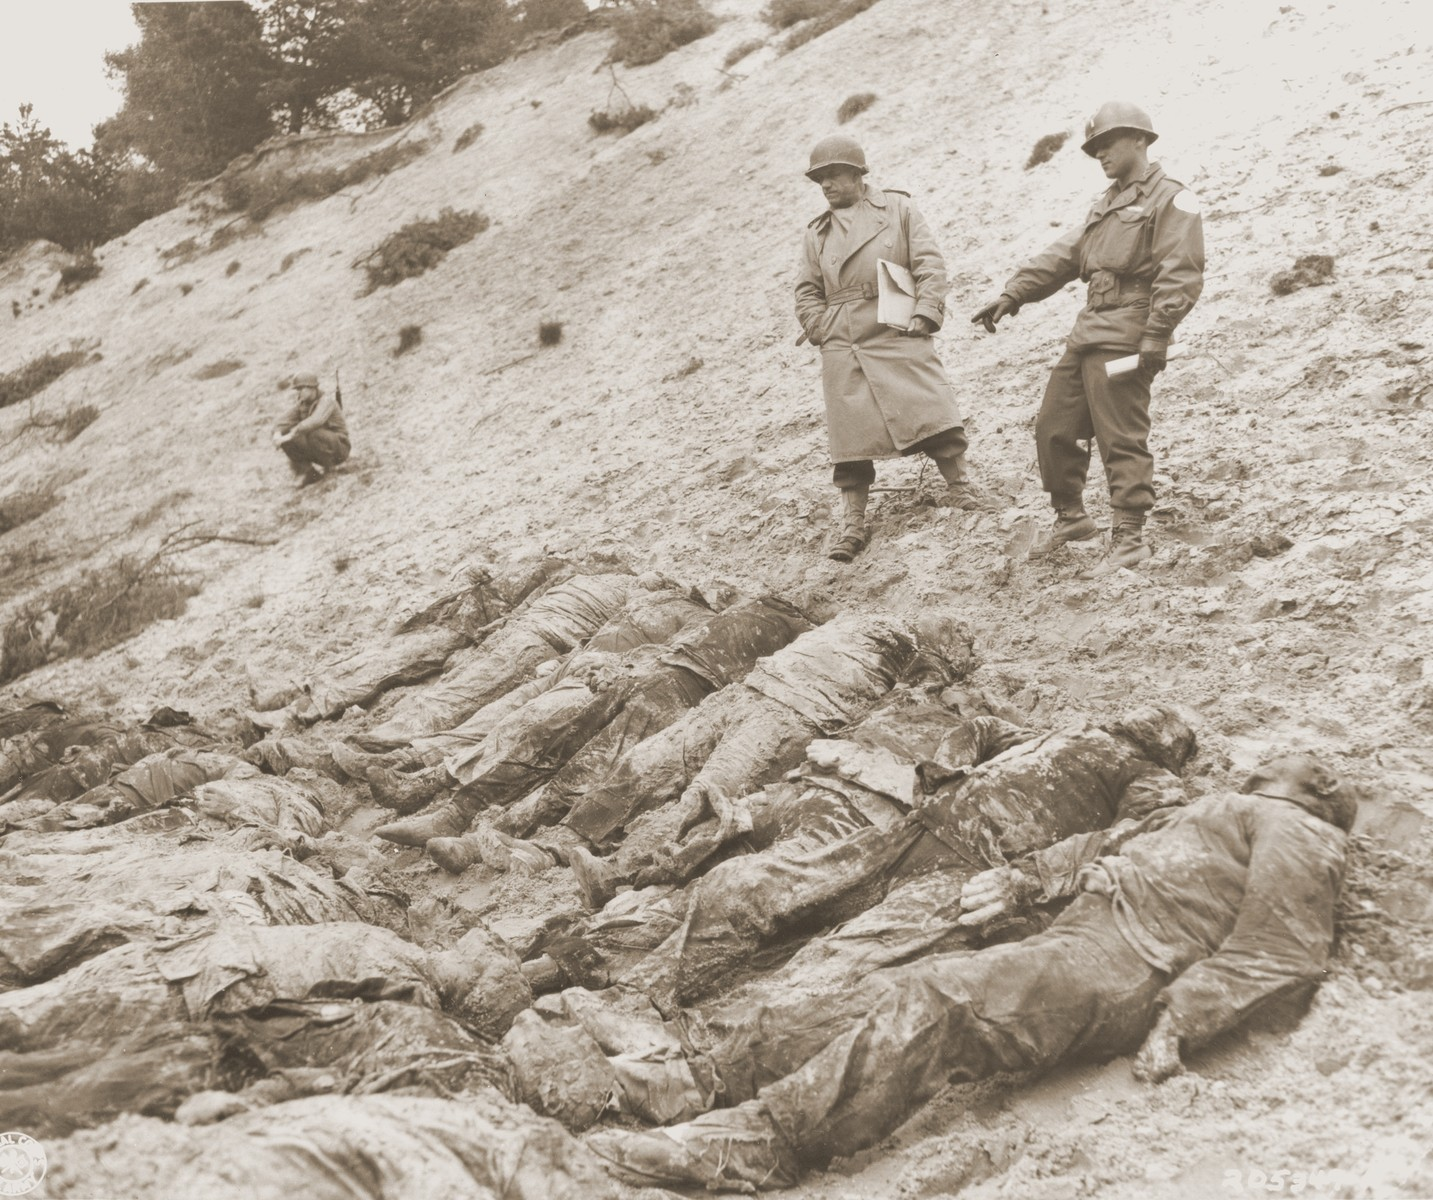 Lt. Col. A. H. Smith (left) of the War Crimes Branch, Judge Advocate General Department, and Lt. Walter Szelaga examine the bodies of 71 political prisoners exhumed from a mass grave on Wenzelnberg near Solingen-Ohligs.    The victims, most of whom were taken from Luettringhausen prison, were shot and buried by the Gestapo following orders to eliminate all Reich enemies just before the end of the war.